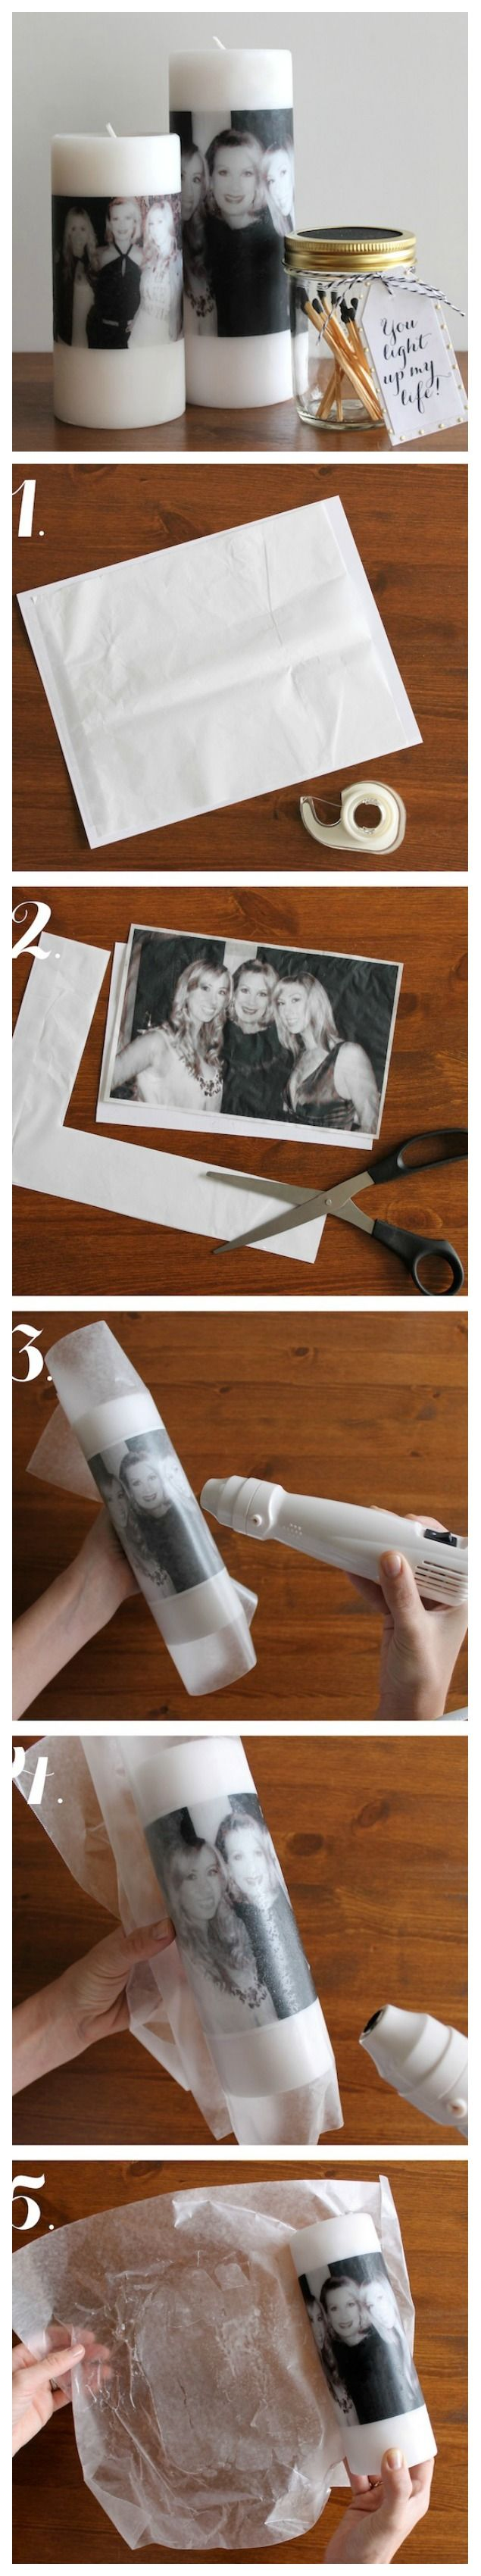 Mother's Day: DIY Photo Candle